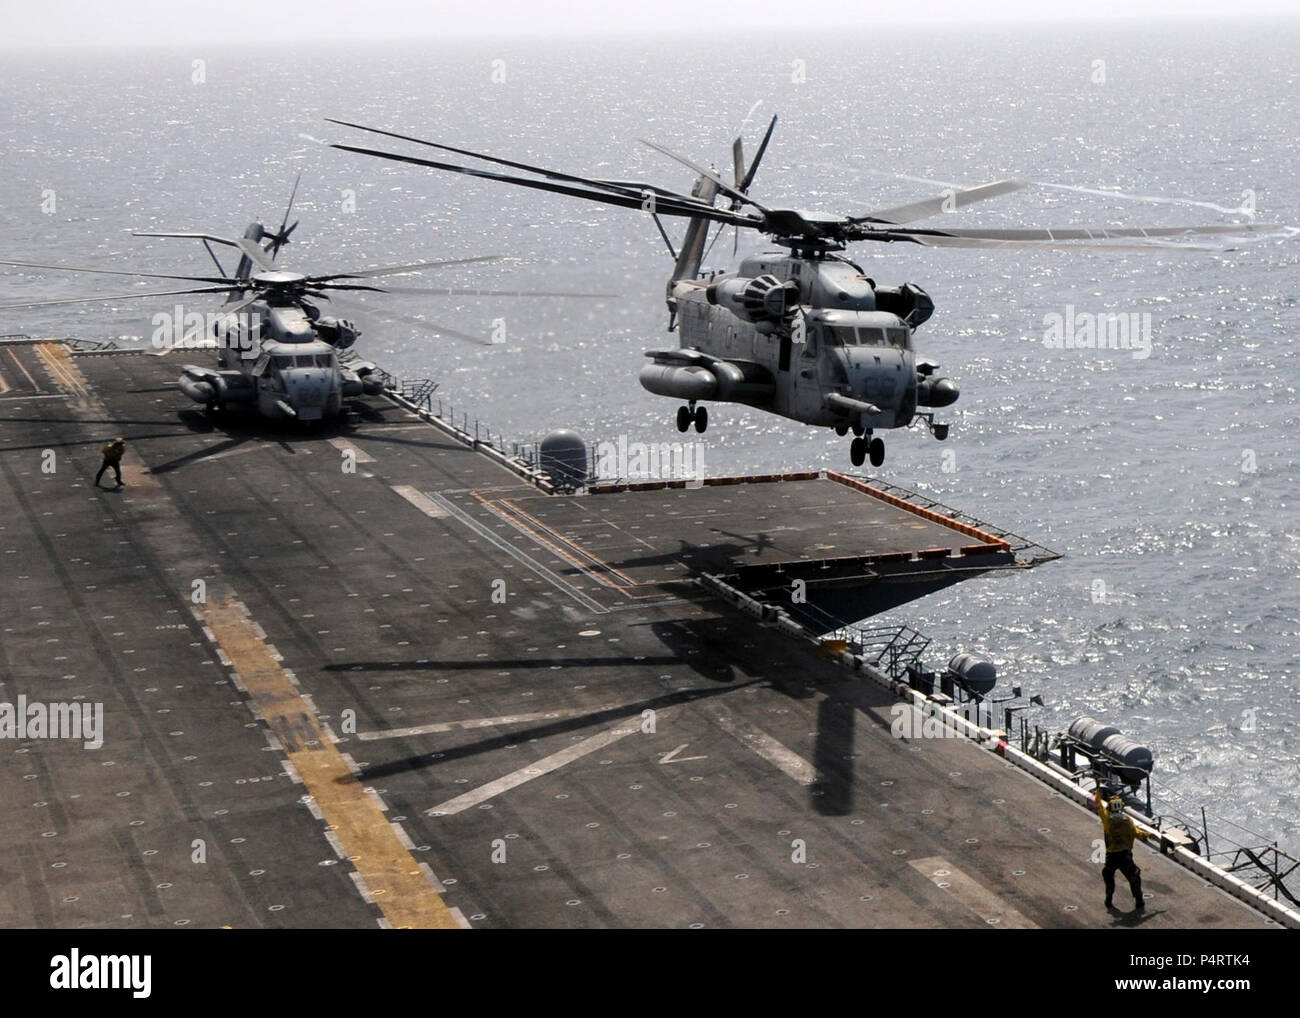 A U.S. Marine Corps CH-53E Super Stallion helicopter assigned to Helicopter Marine Medium Squadron (HMM) 165 takes off from the flight deck of USS Peleliu (LHA 5) with Marines aboard who will support flood relief in Pakistan Aug. 12, 2010, in the Arabian Sea. Stock Photo